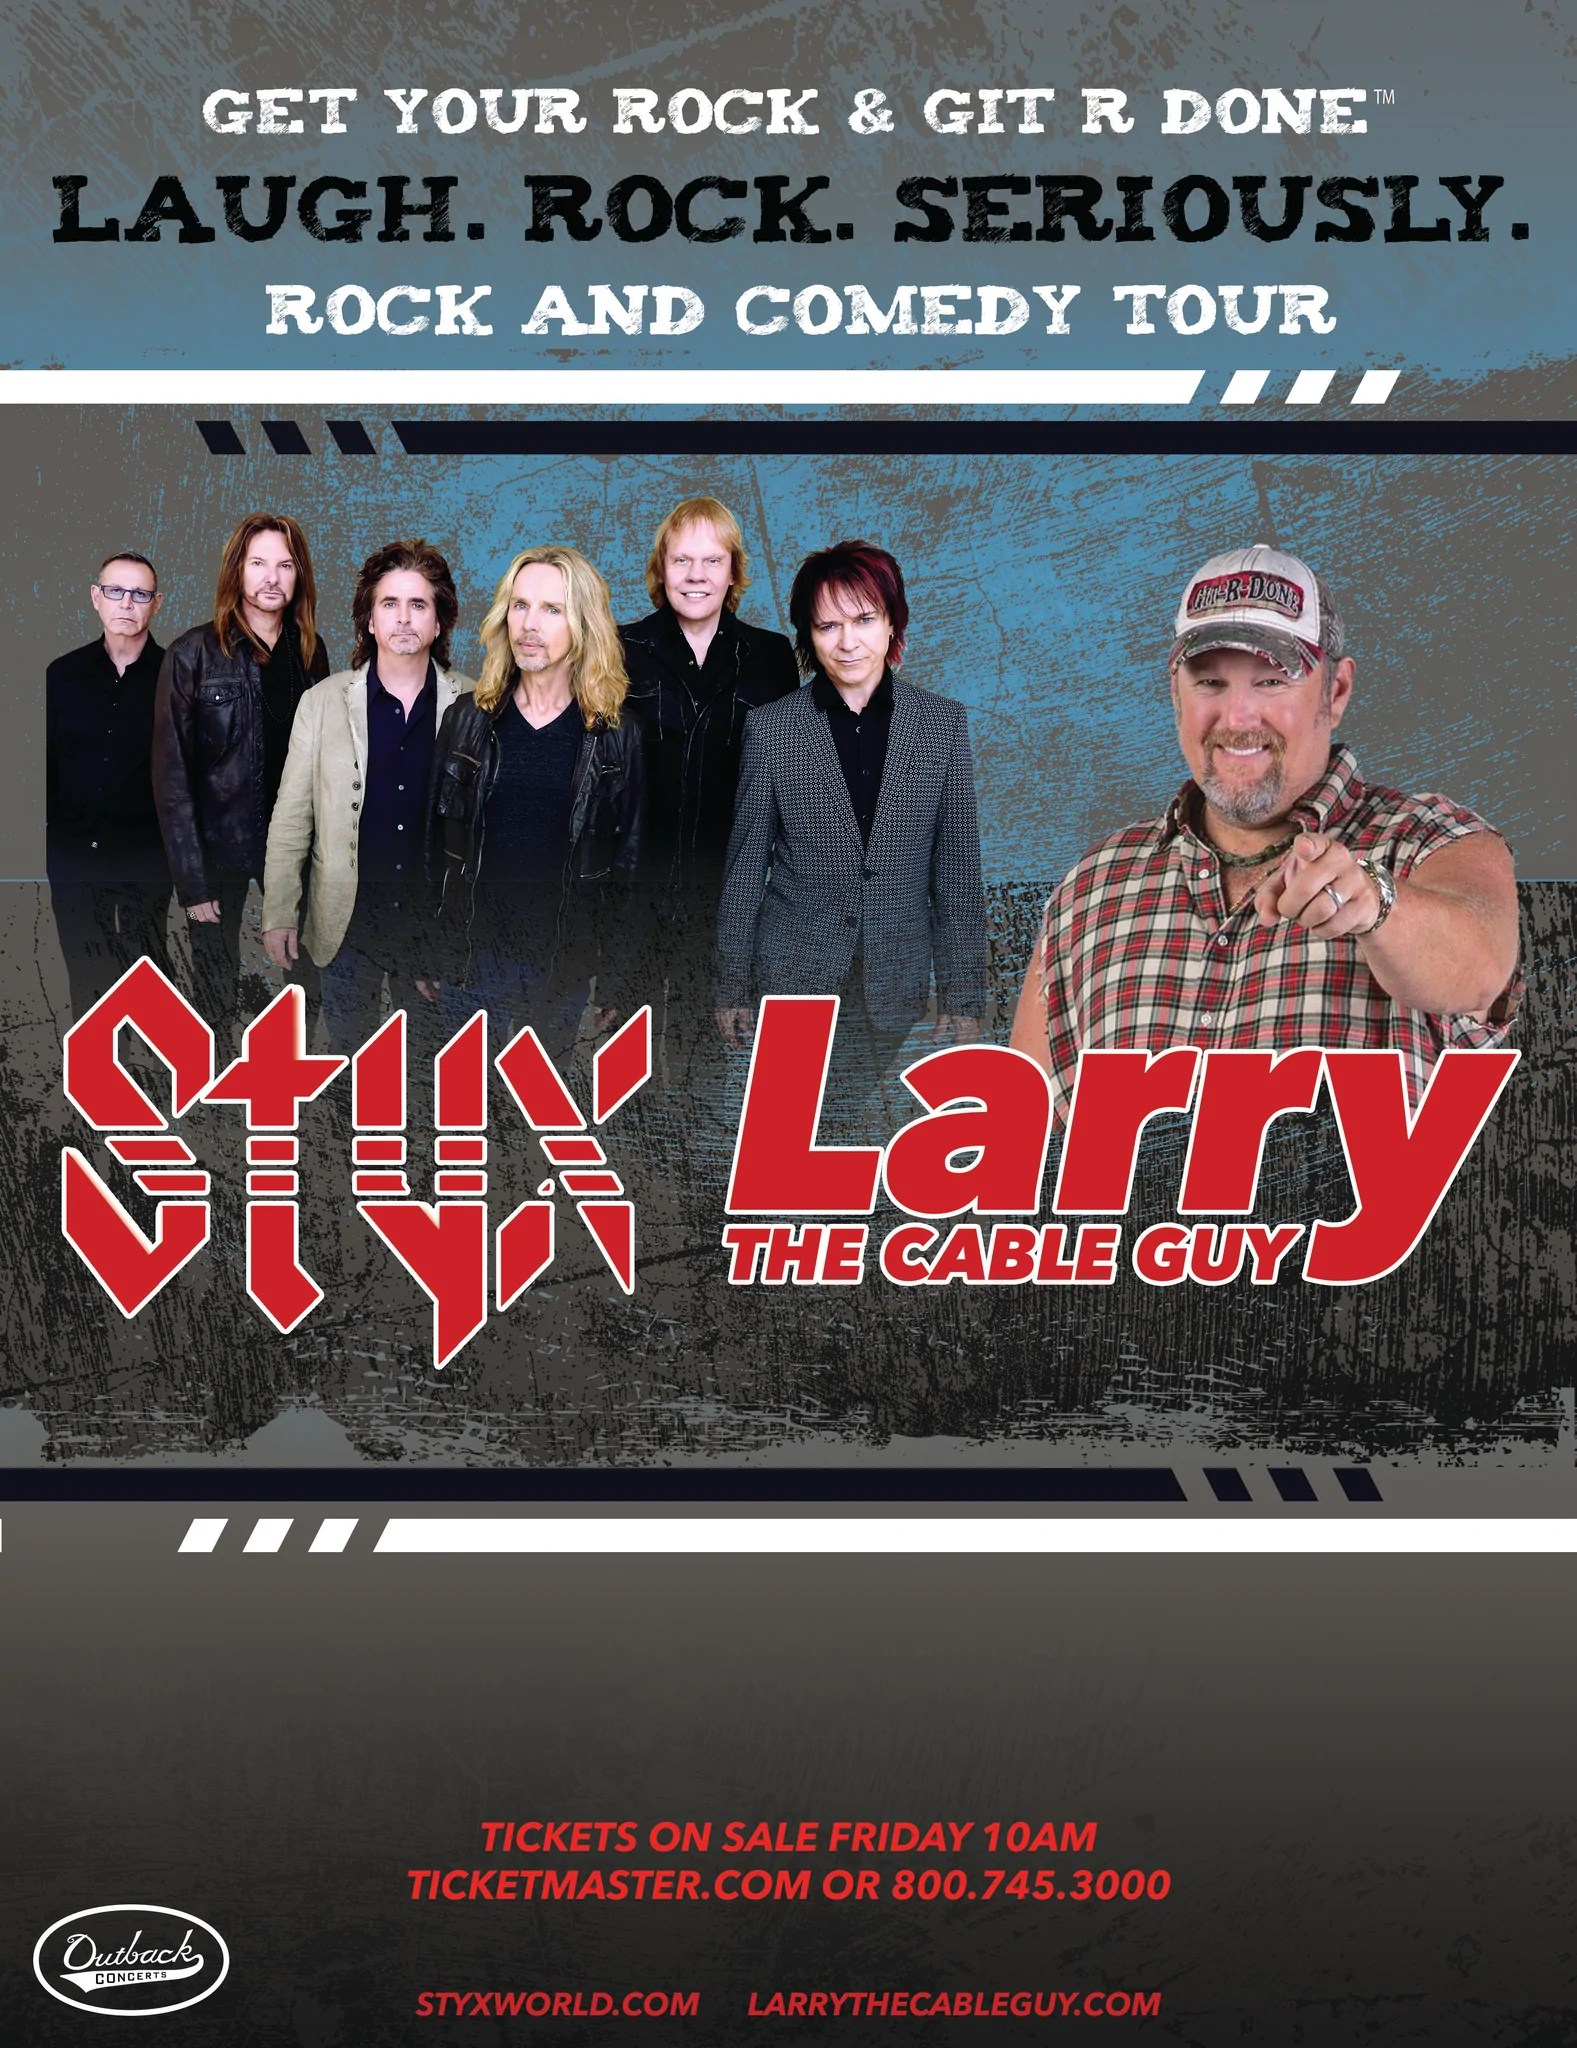 small resolution of styx and larry the cable guy set to rock and git r done with seven unforgettable shows laugh rock seriously starting march 21 in fargo nd